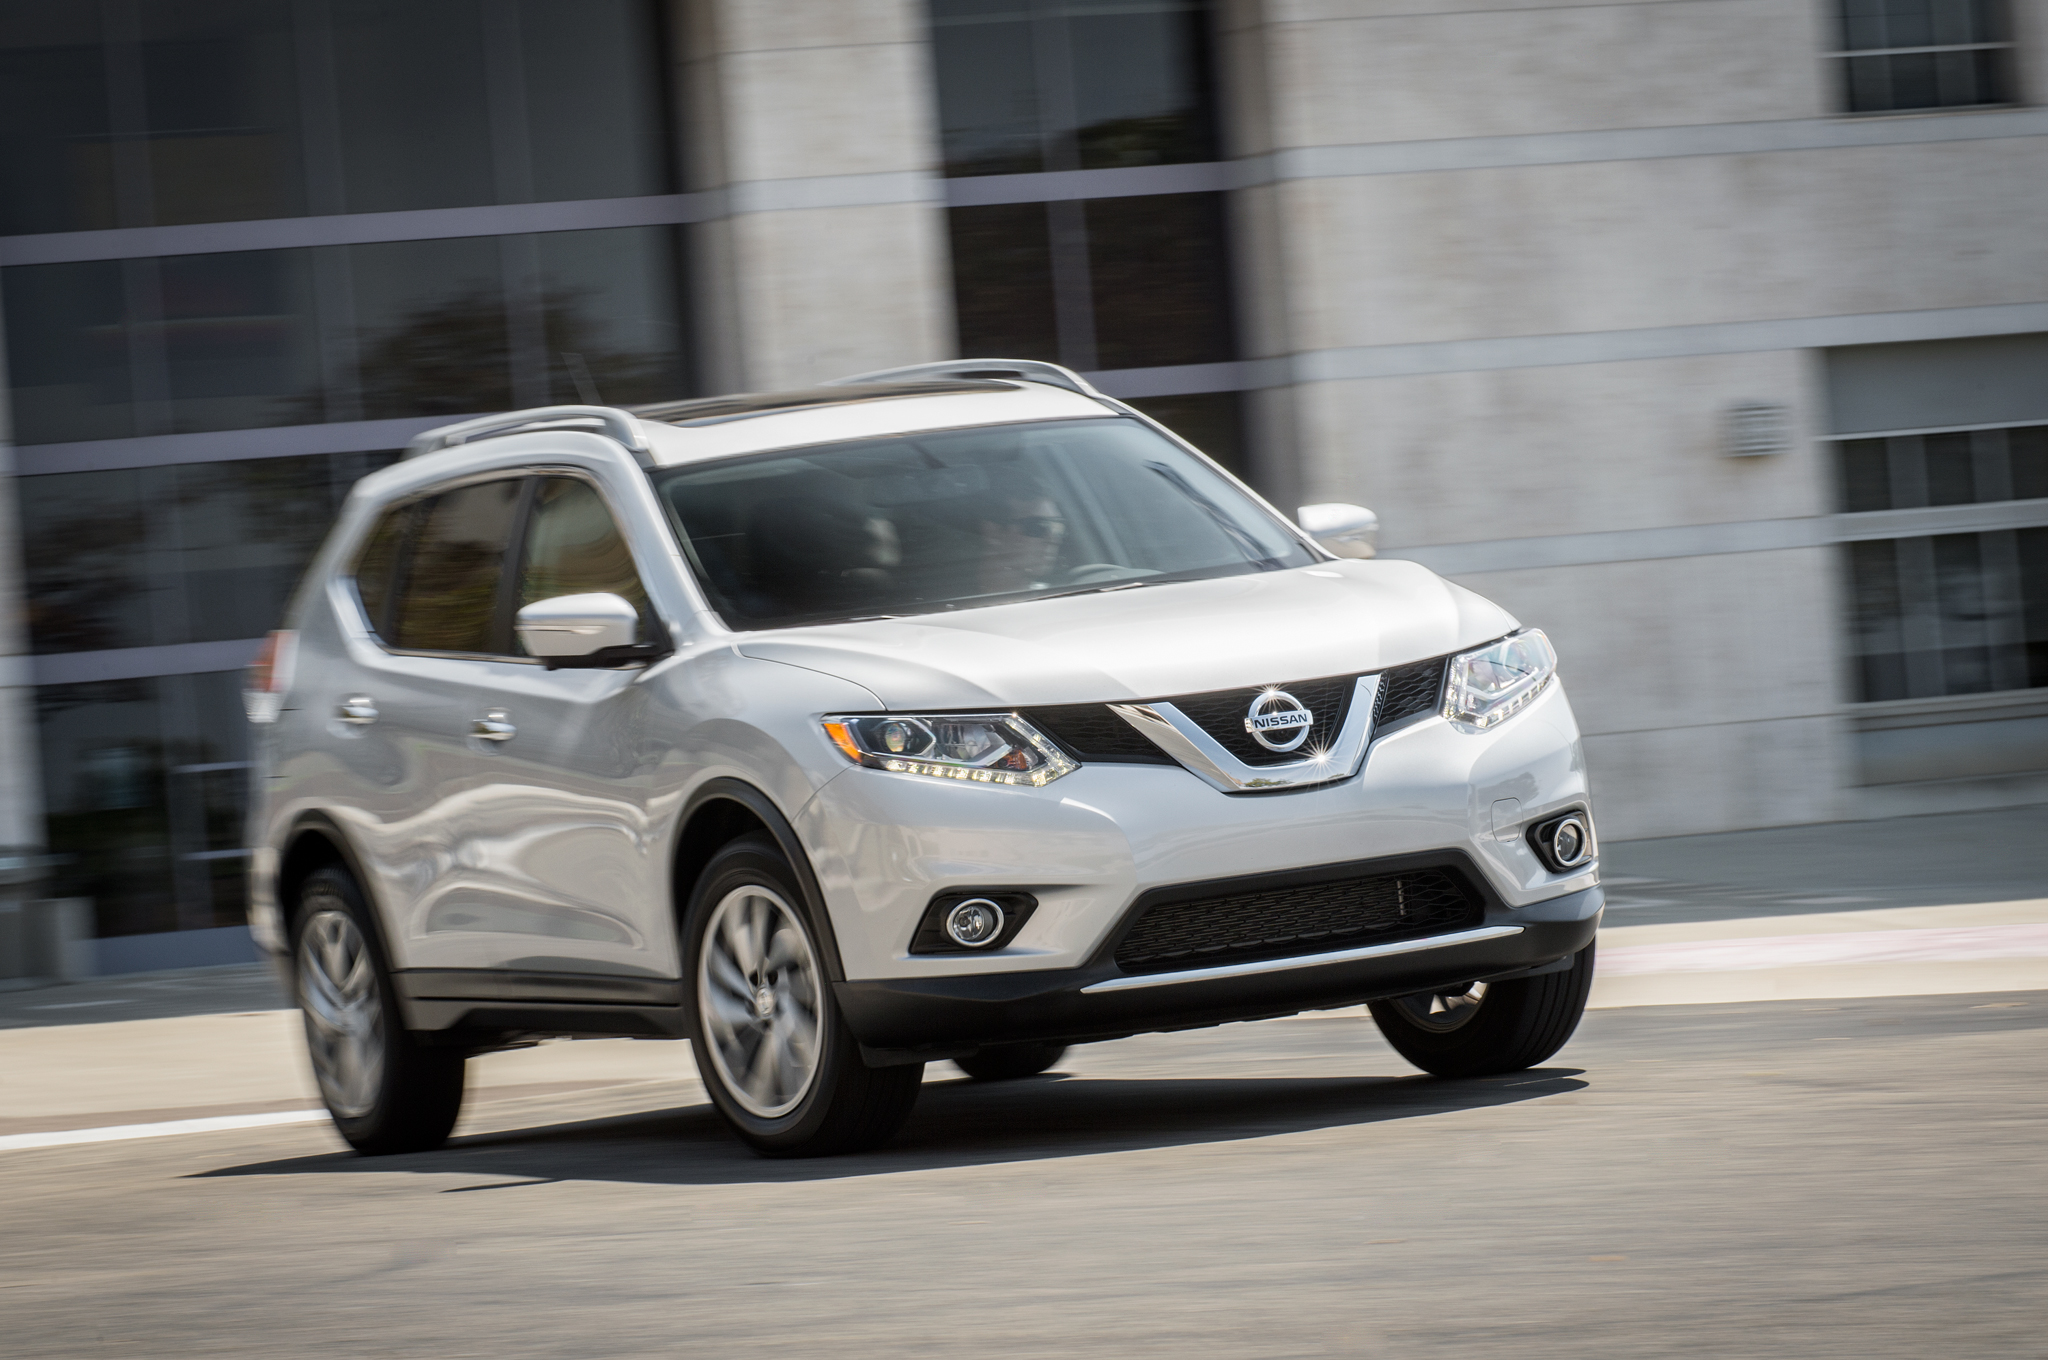 Lovely 2014 Nissan Rogue SL AWD Long Term Update 5